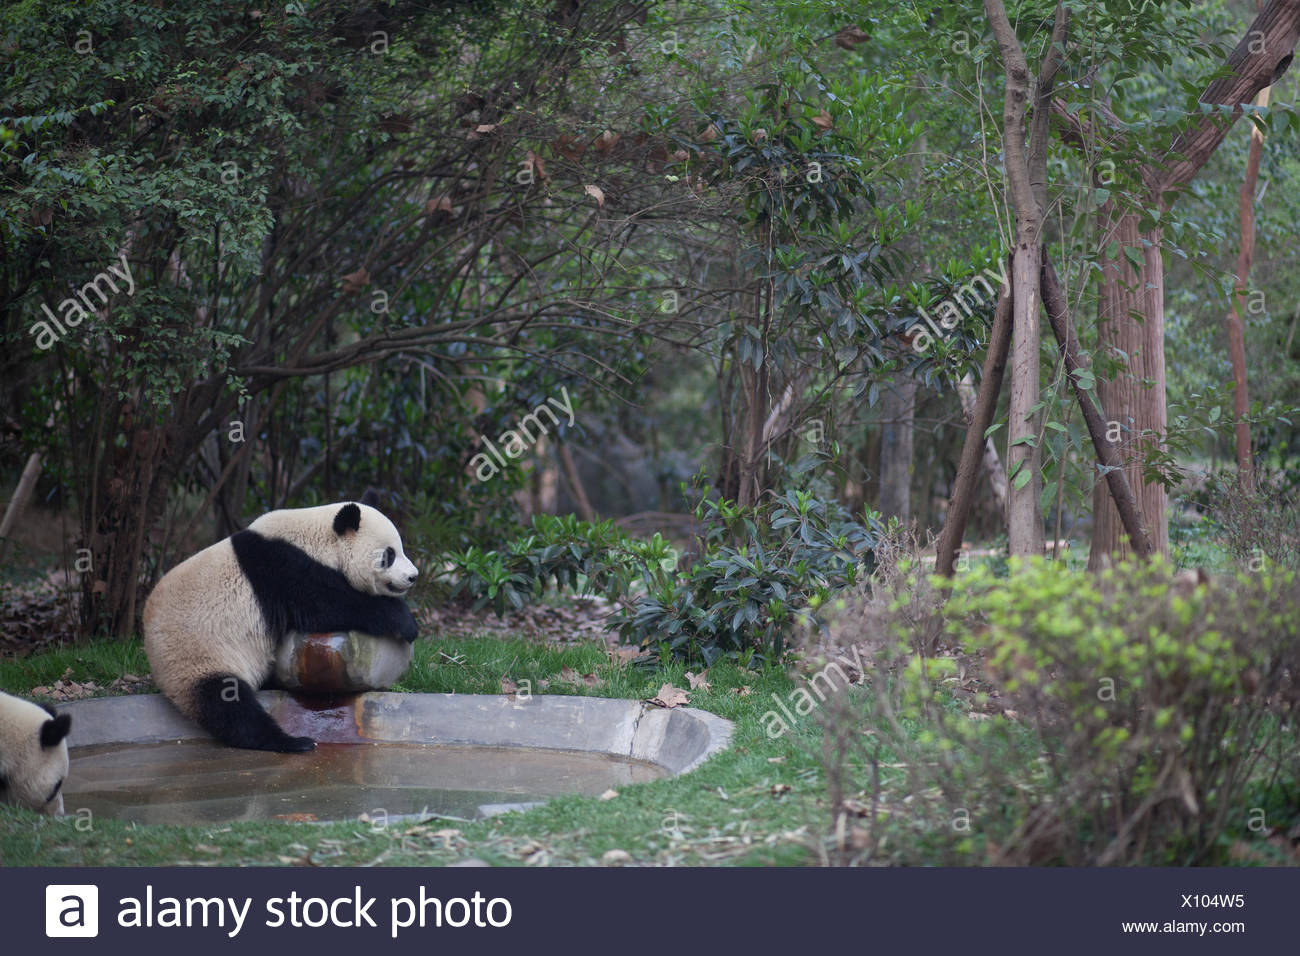 Pandas By The Pond Against Trees - Stock Image